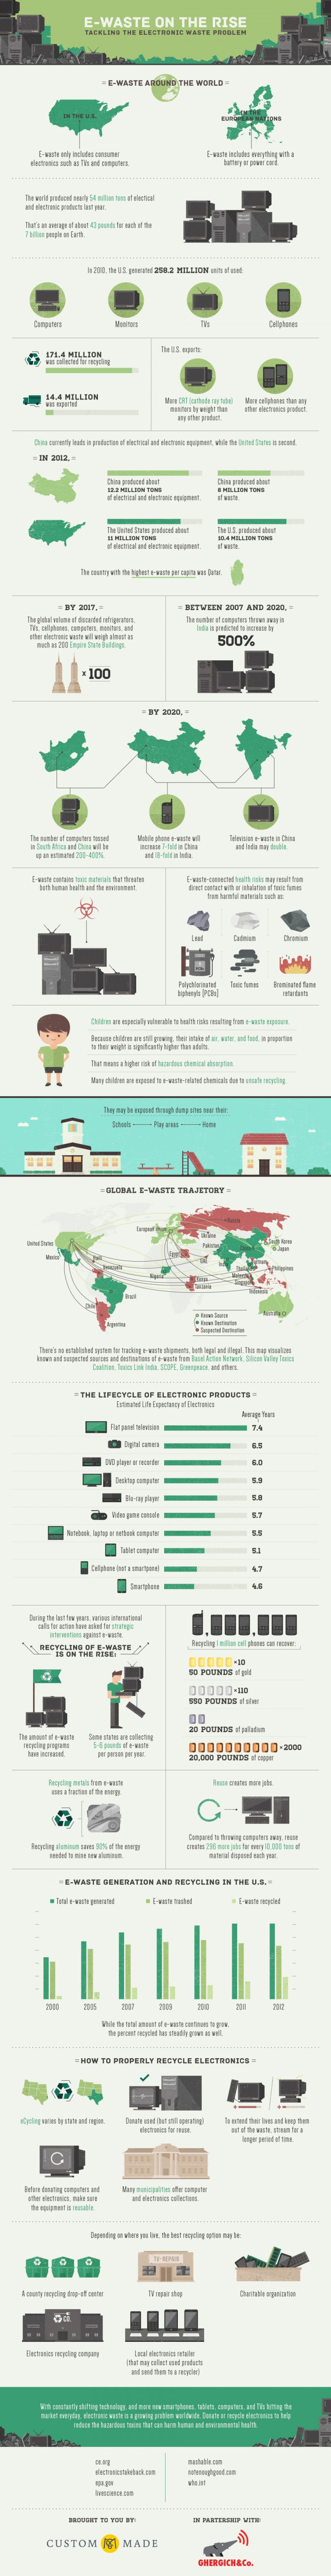 Tackling the Electronic Waste Problem